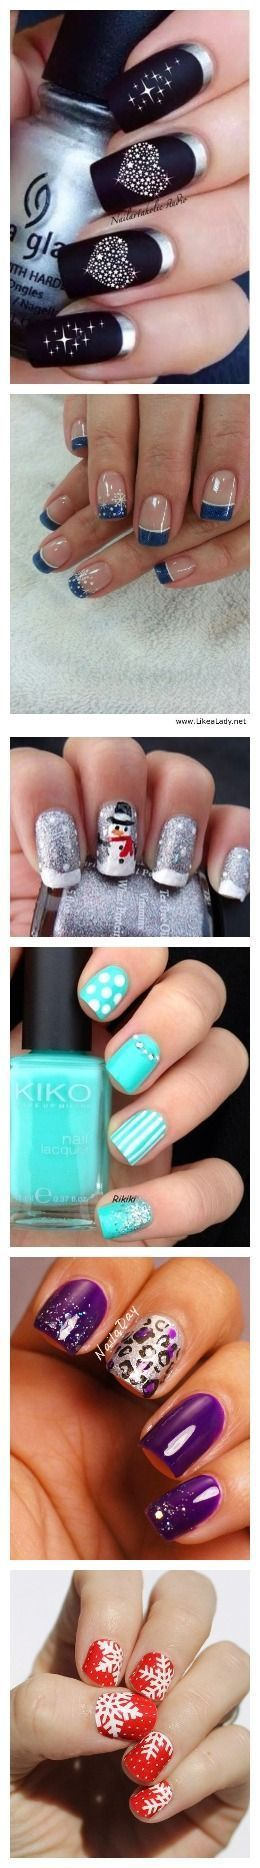 Diy Nail Art | Daily Nair Art Ideas - My blog dezdemon-nailartdesign.xyz